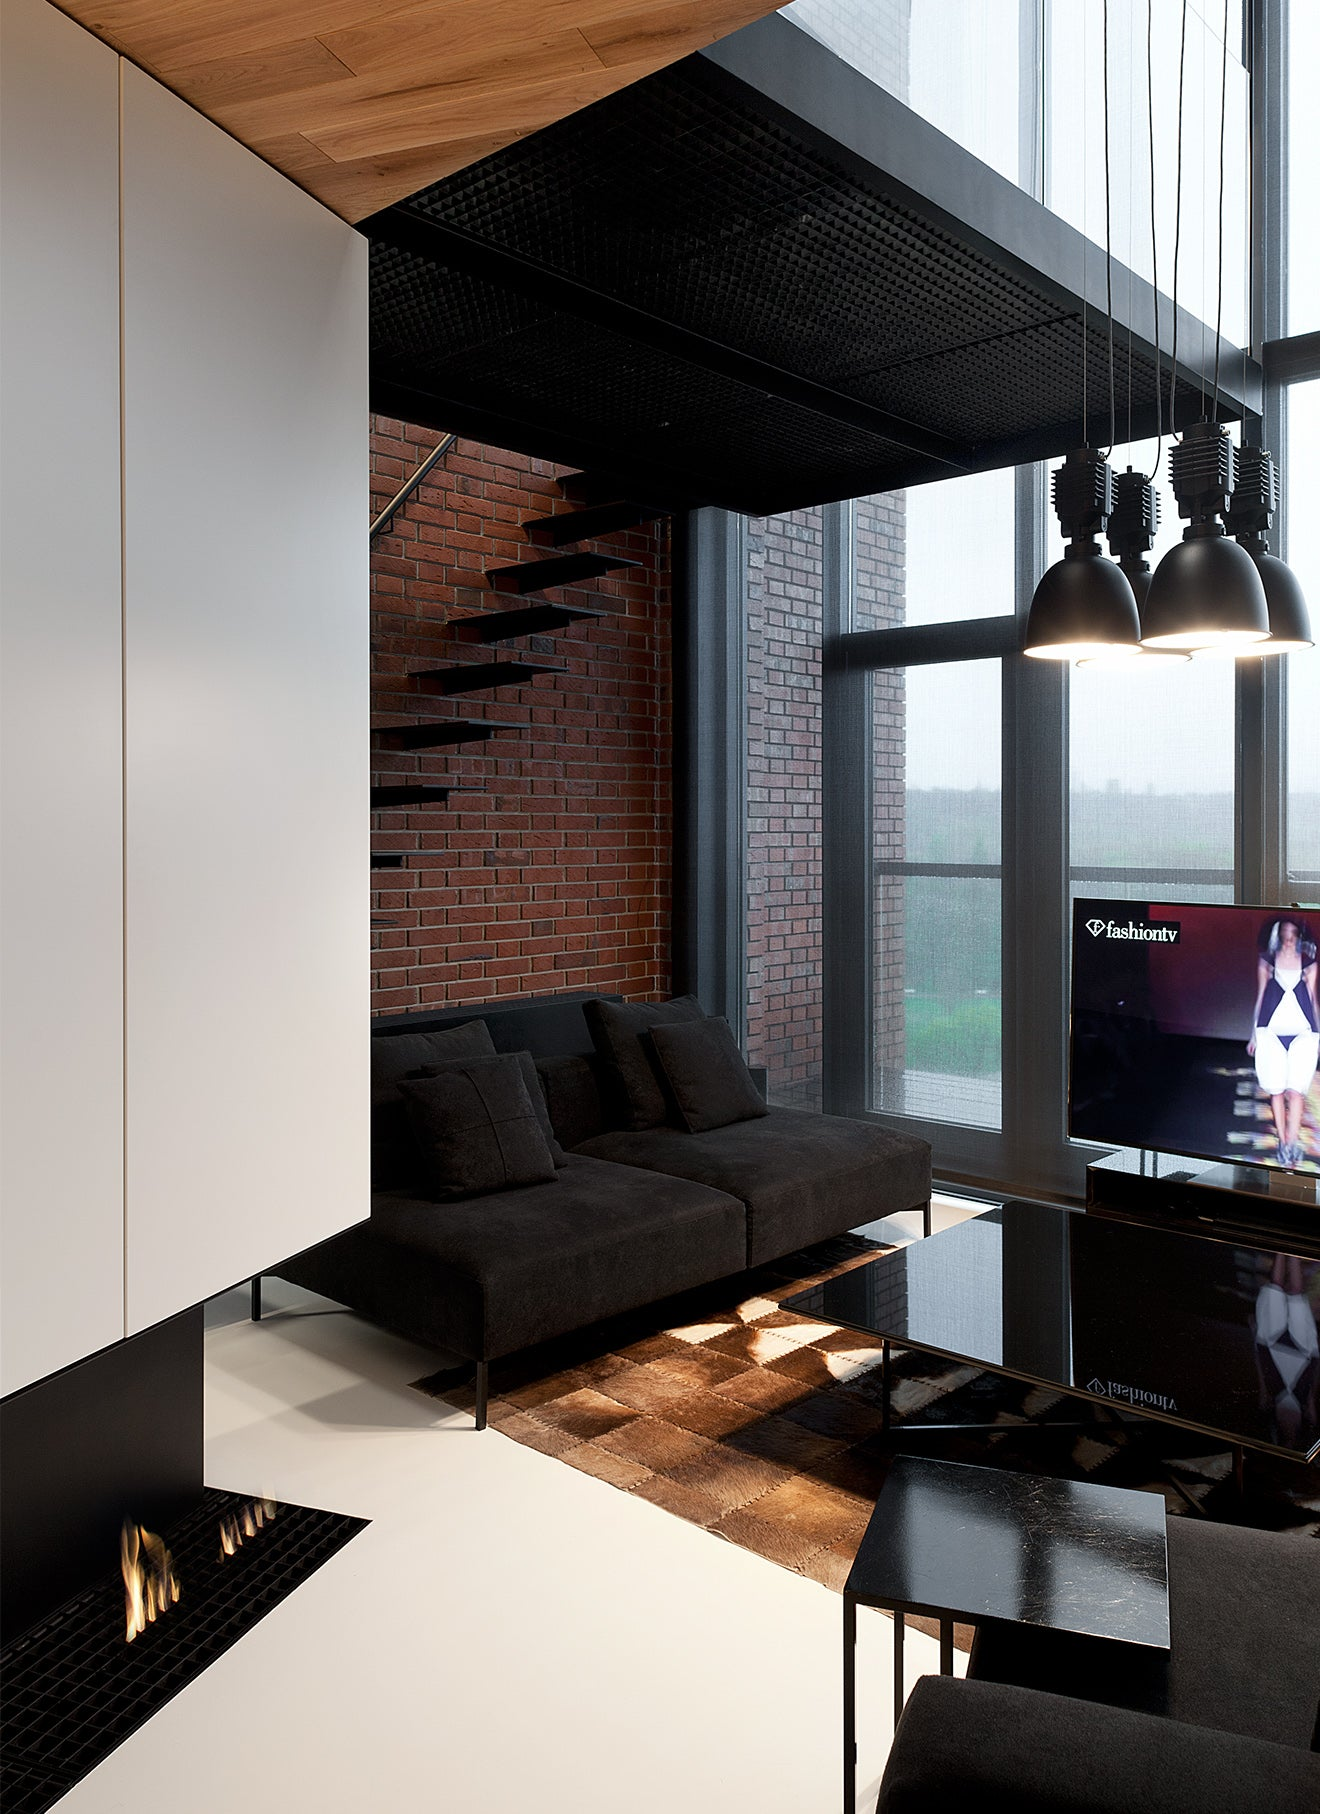 Modern industrial Park Loft interior design from Studio Mode, Bulgaria